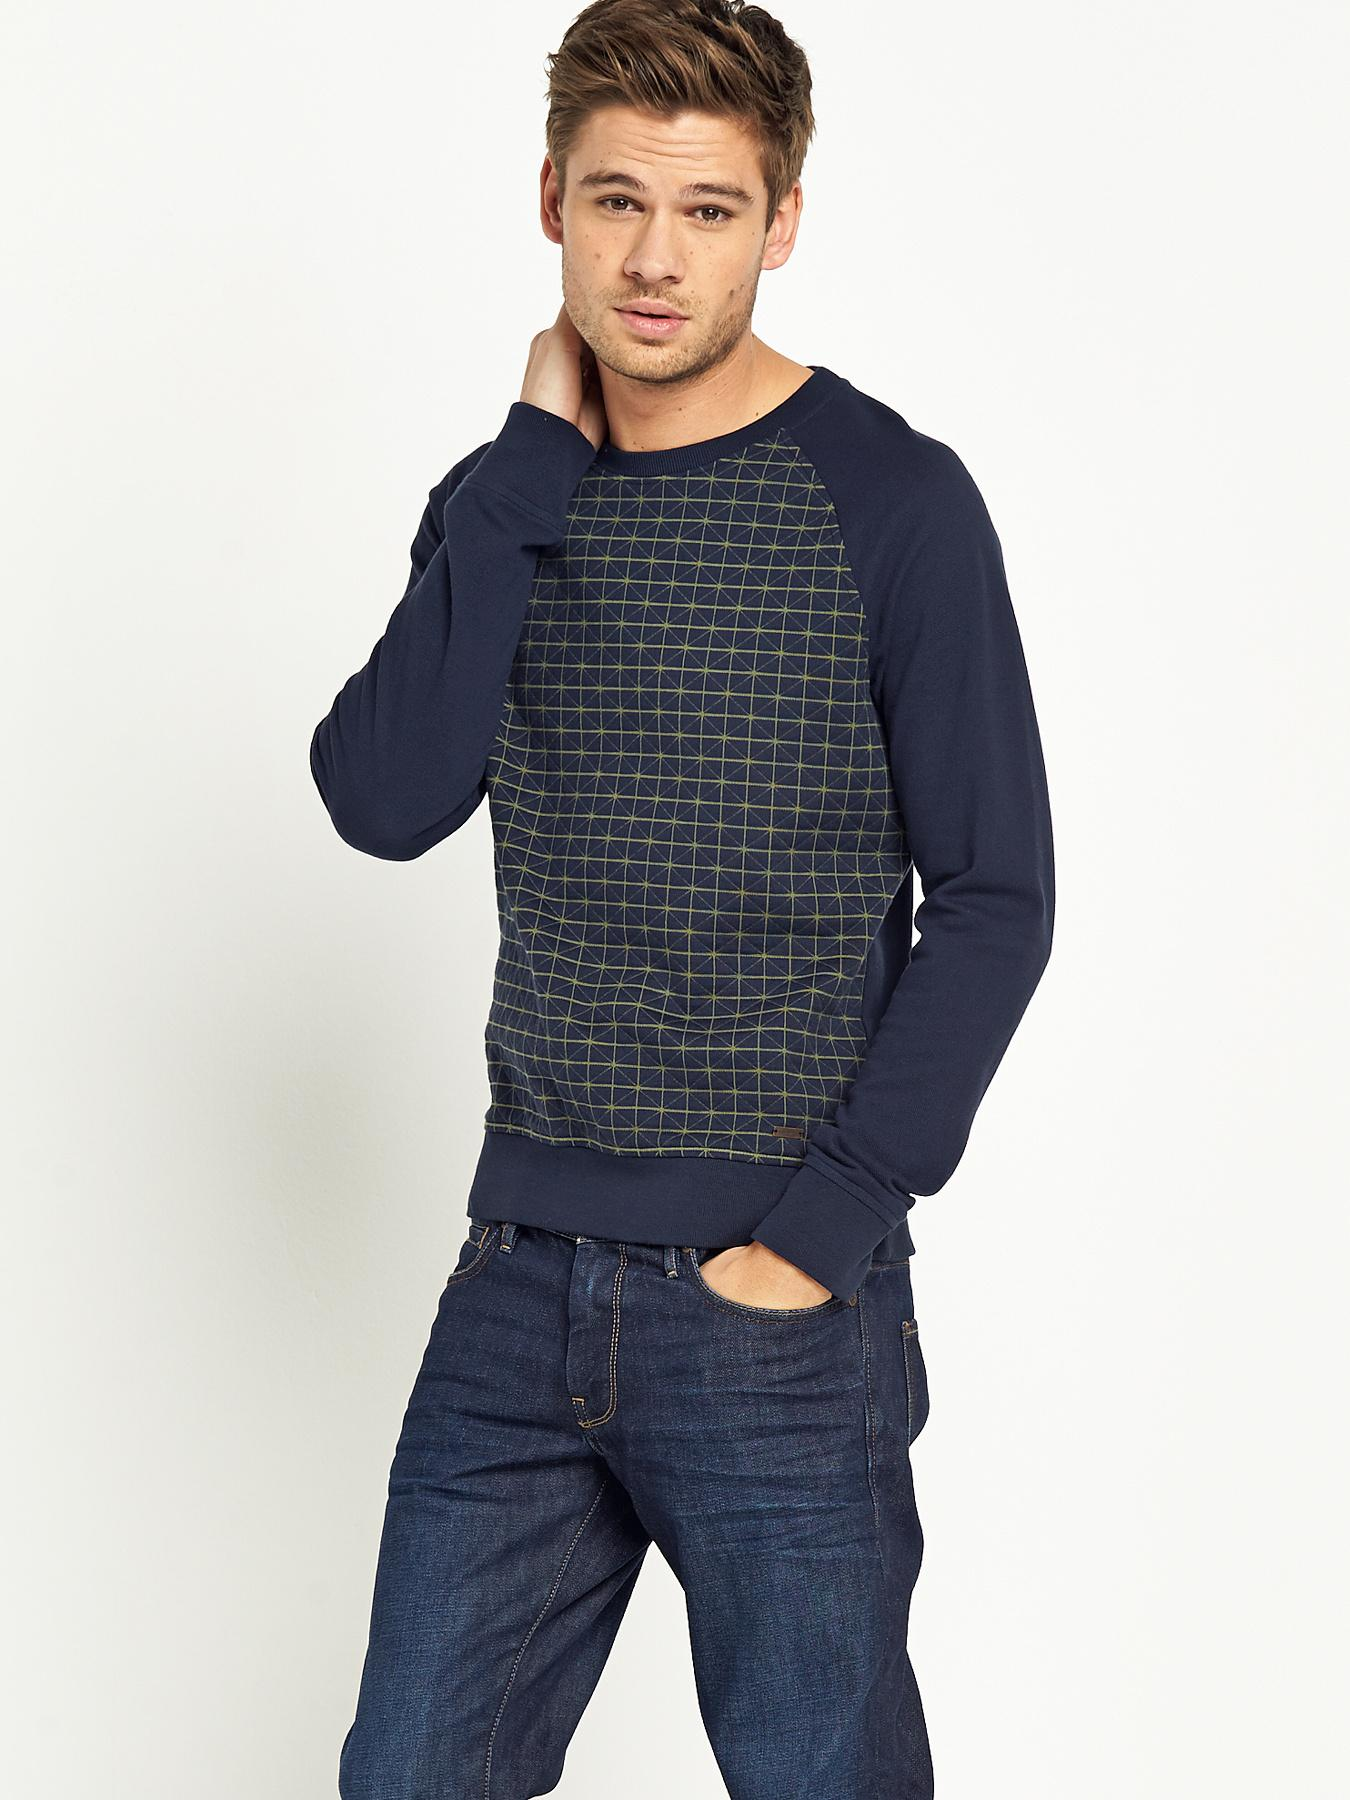 Boss Orange Mens Wanton Long Sleeve Sweatshirt - Navy, Navy